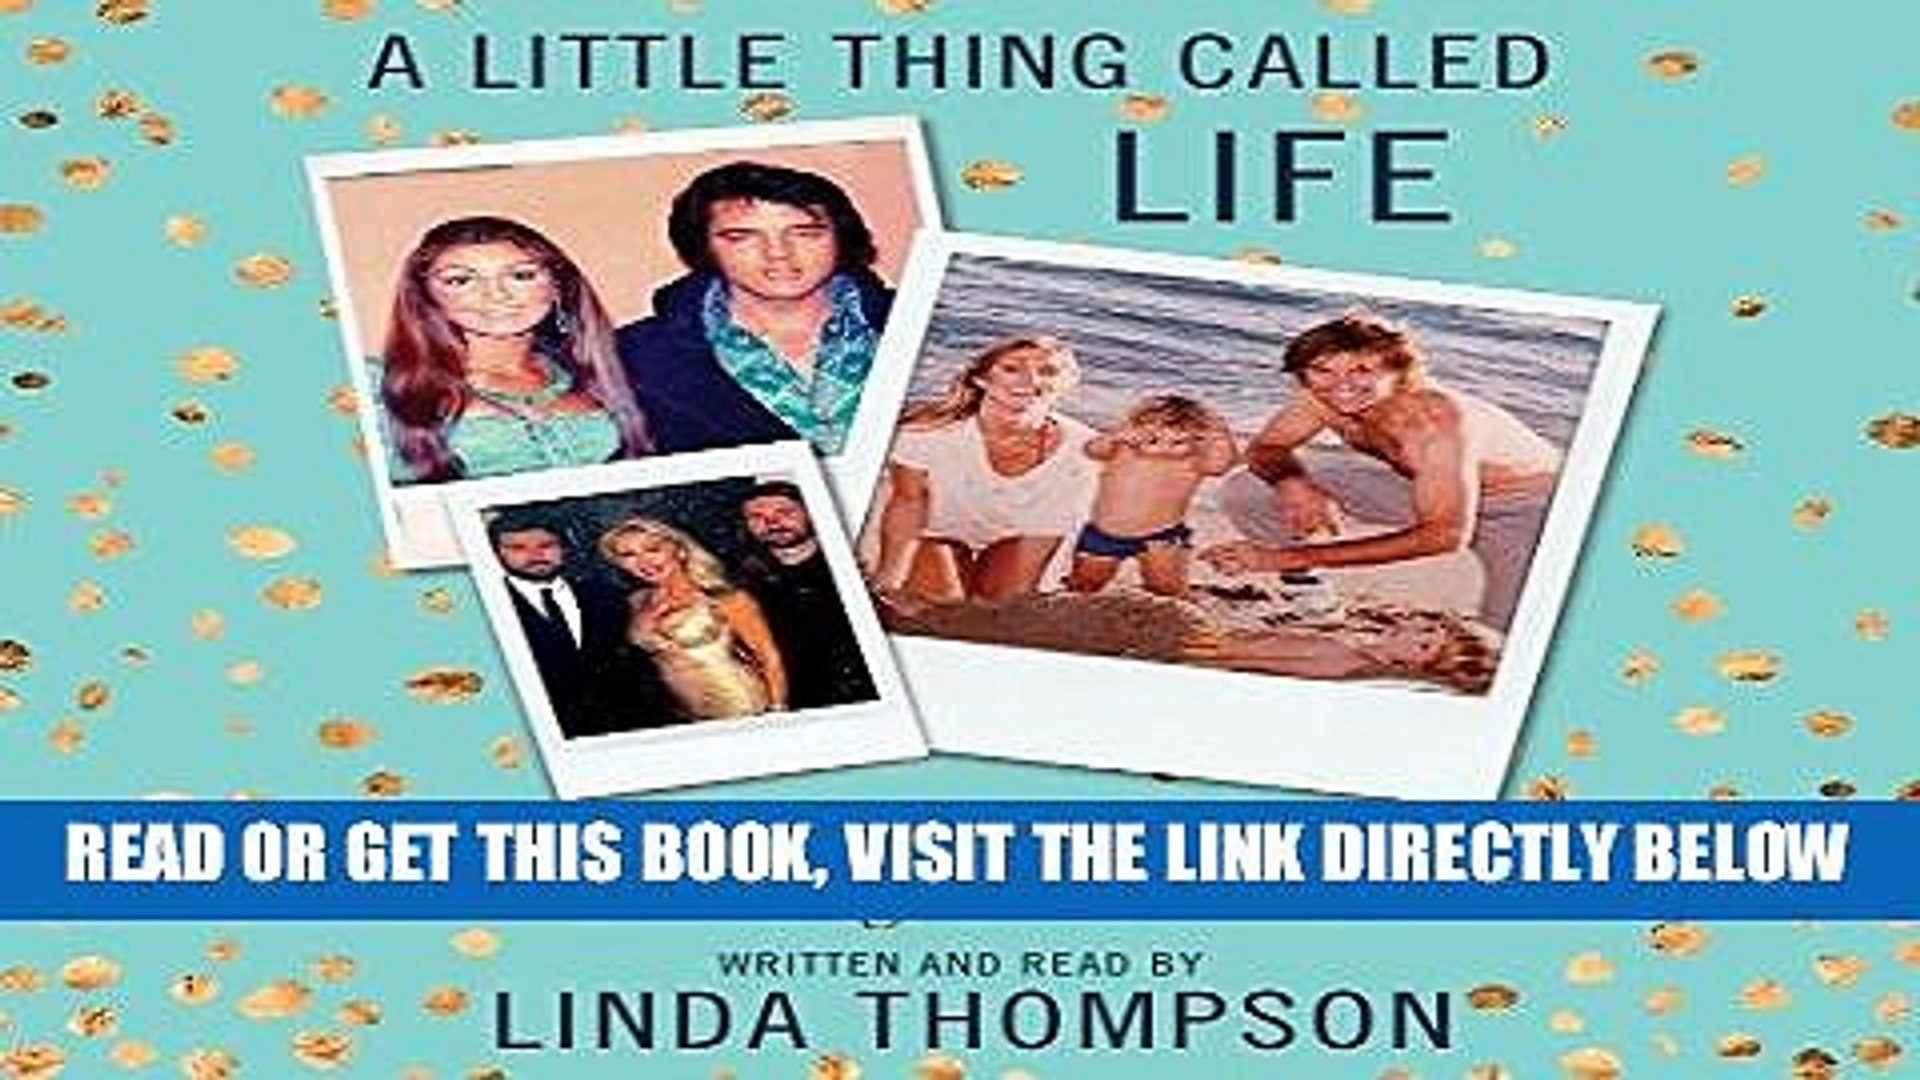 [FREE] EBOOK A Little Thing Called Life: On Loving Elvis Presley, Bruce Jenner, and Songs in